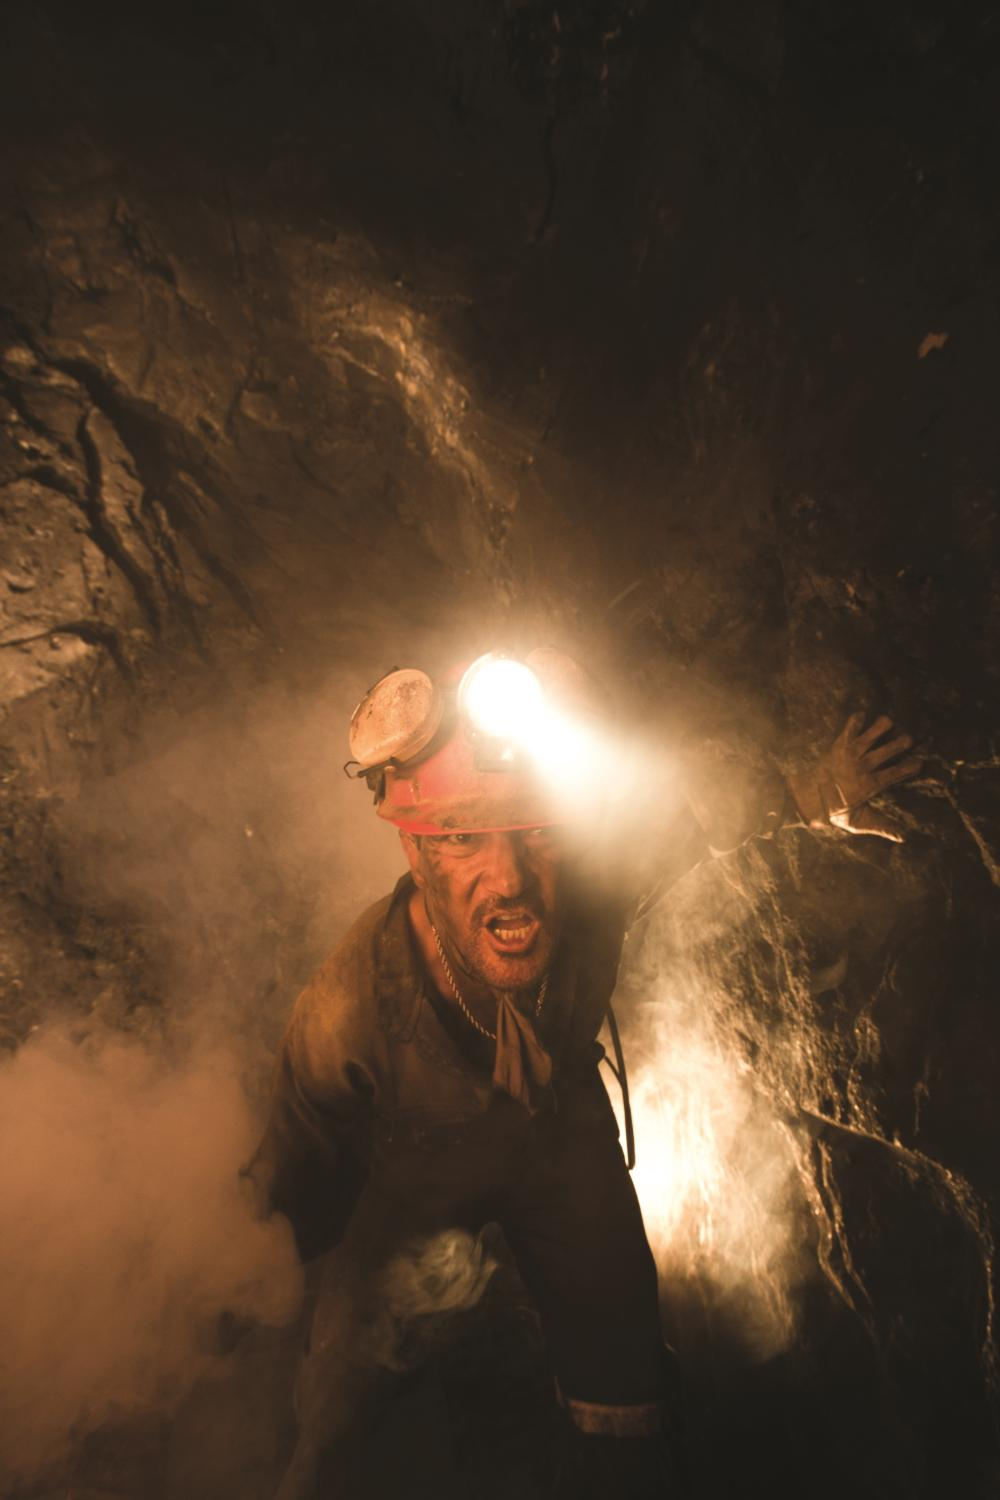 'The 33' recounts the Chilean miner rescue